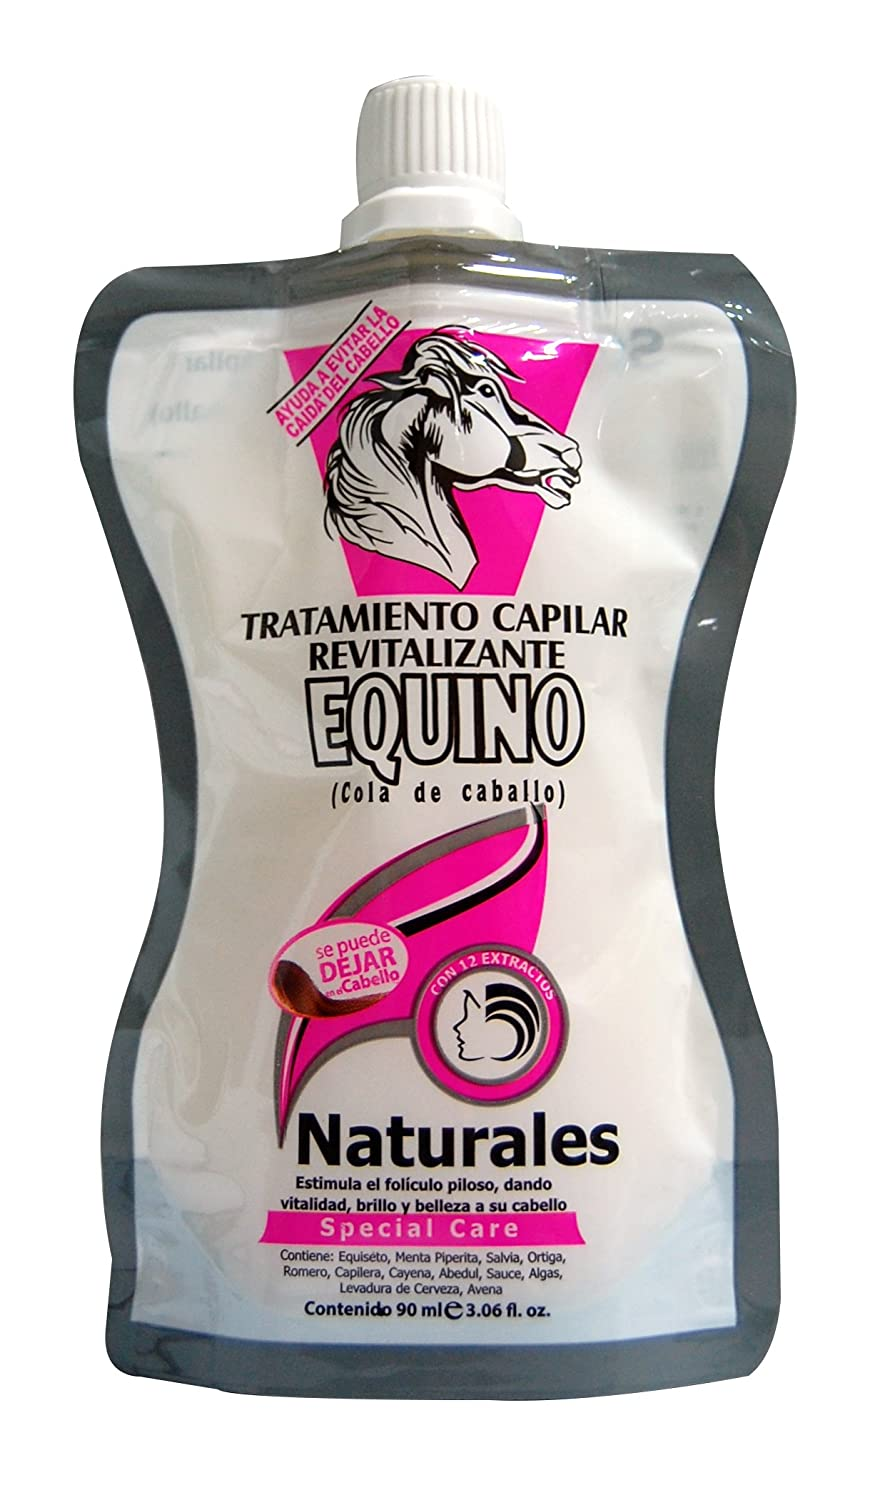 Amazon.com : LISSIA-Equino Sobres/ sachet Tratamiento 90ml/3.06oz Horse Tail Ttm. : Beauty